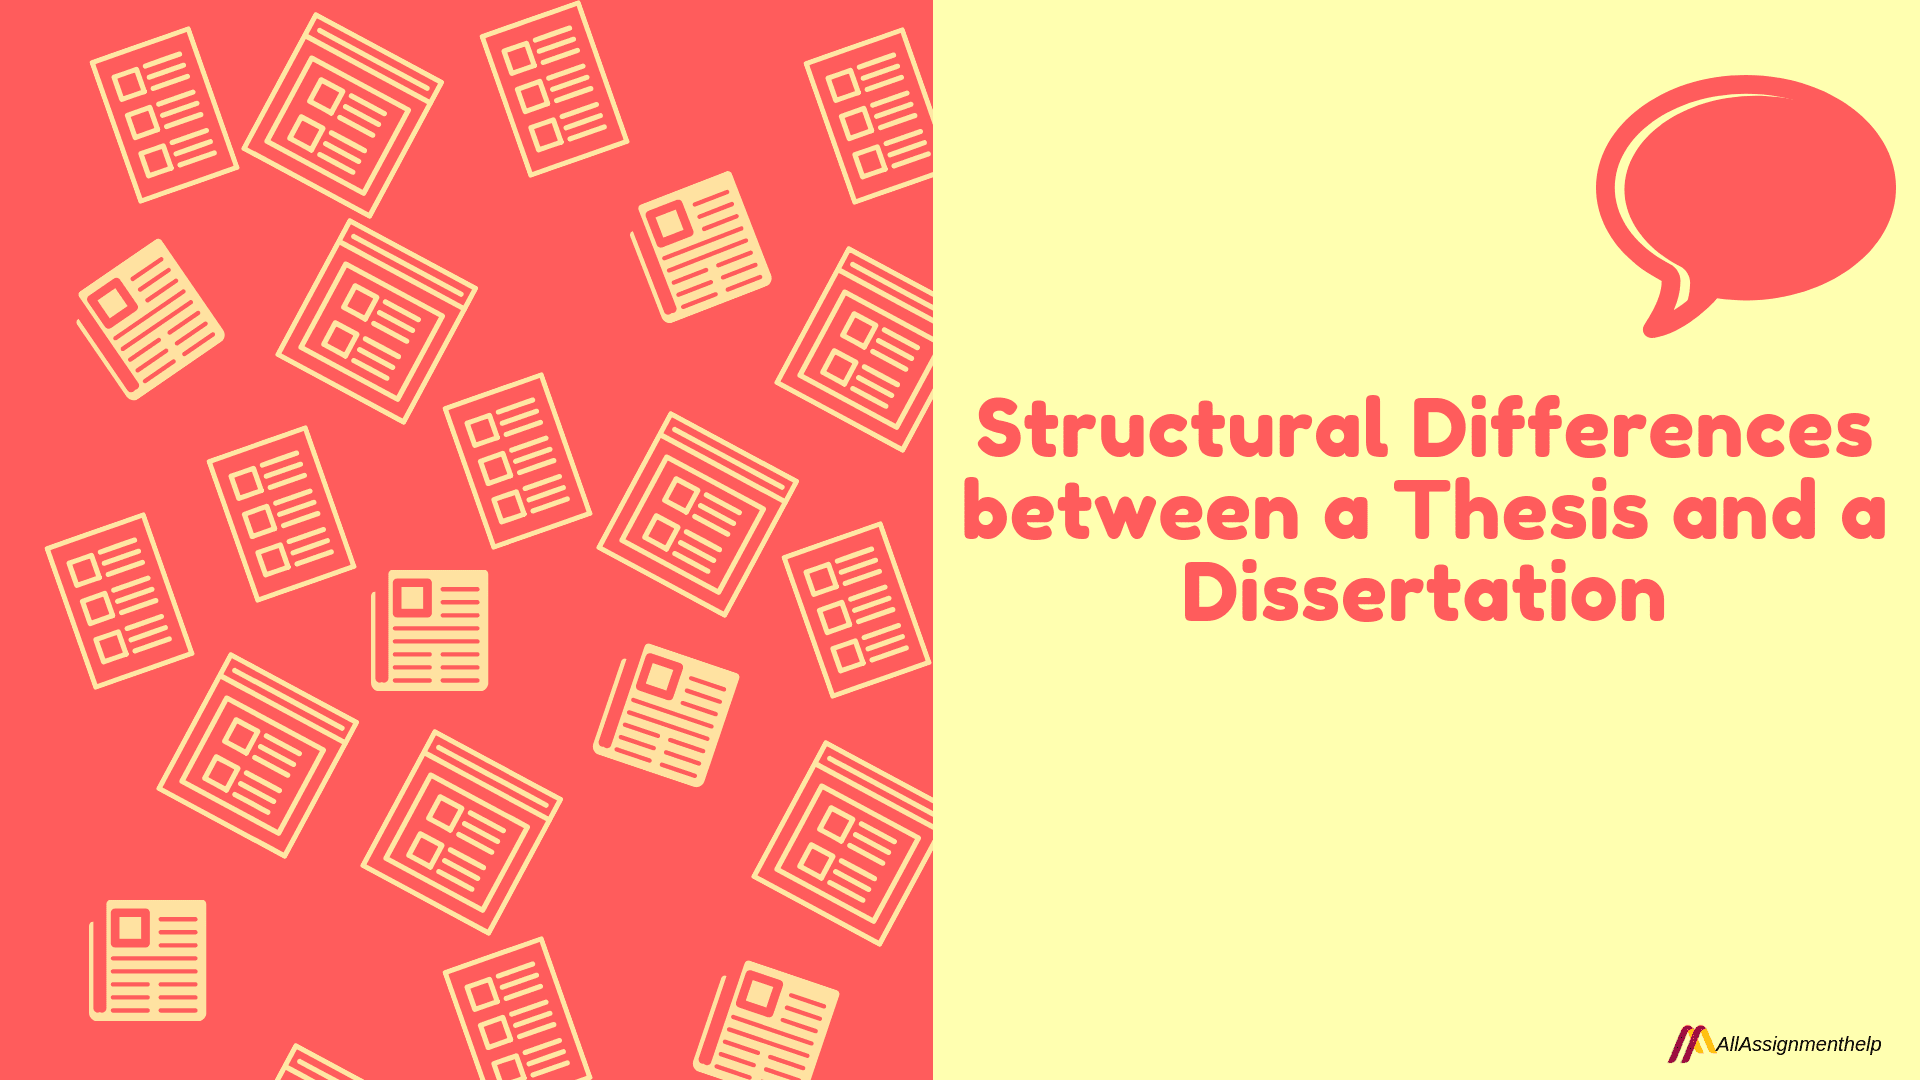 Structural-Differences-Thesis-and-Dissertation